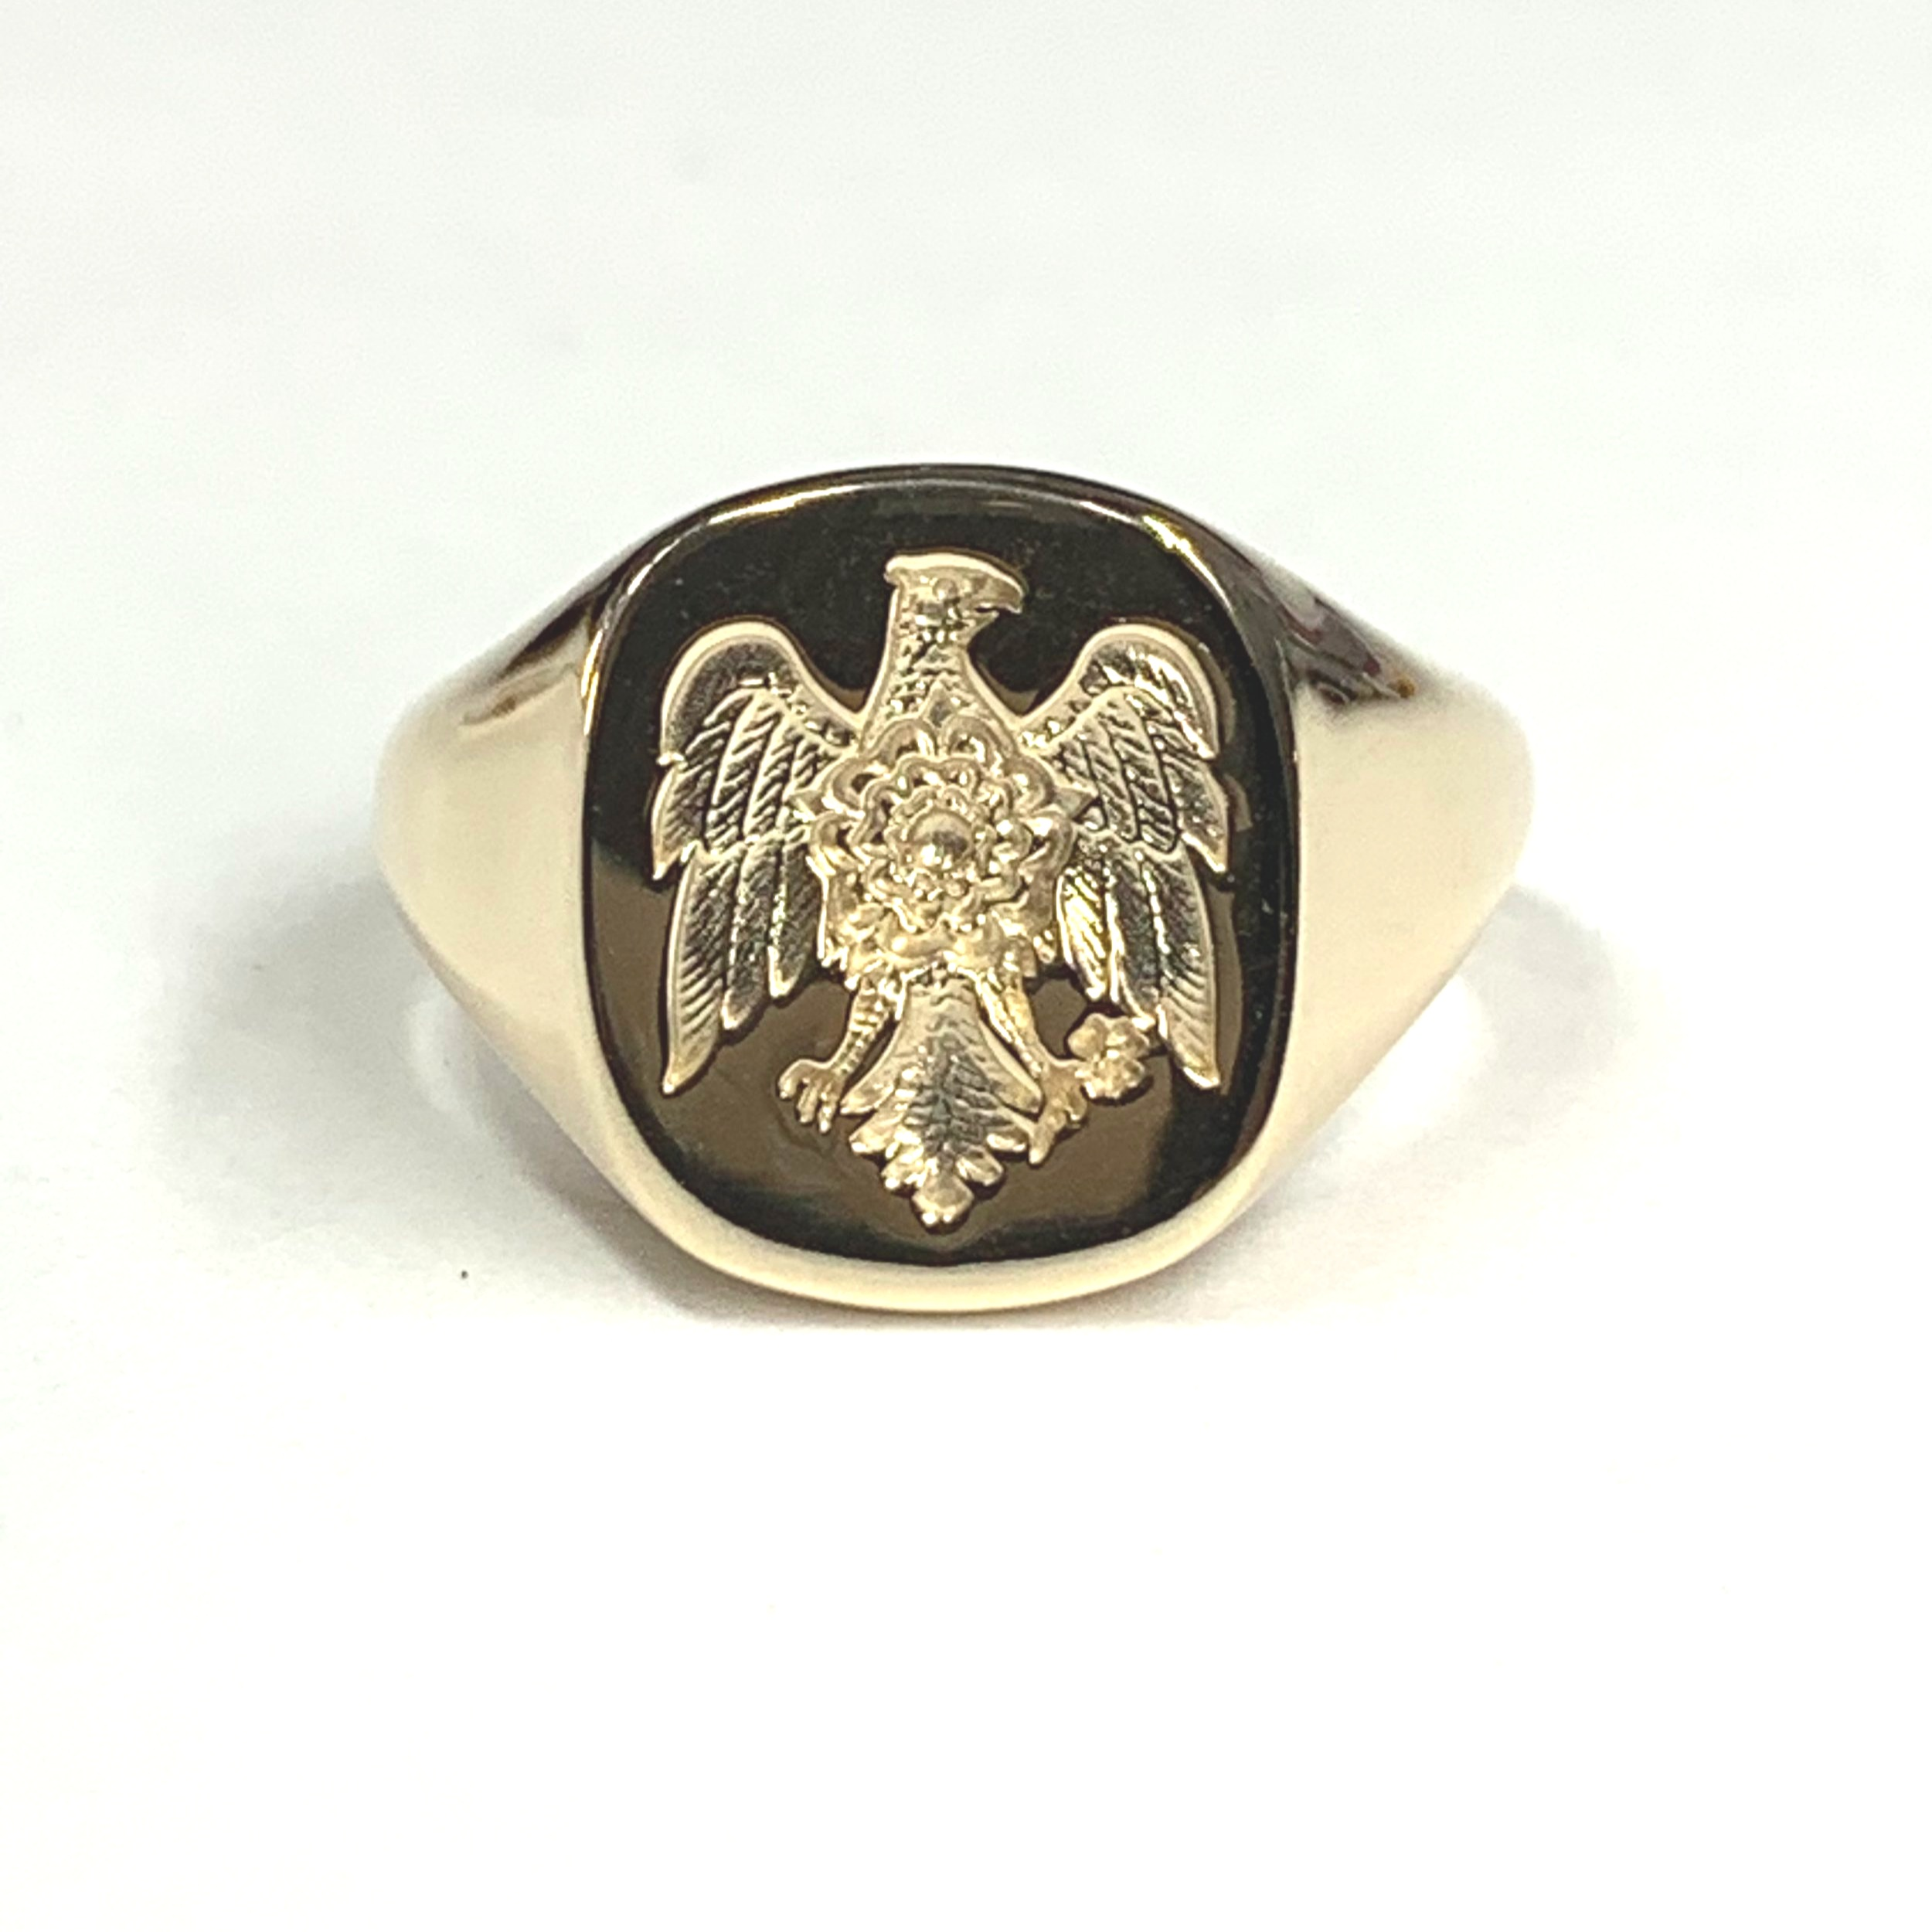 9ct yellow gold oblong cushion shaped signet ring with seal engraved family crest.